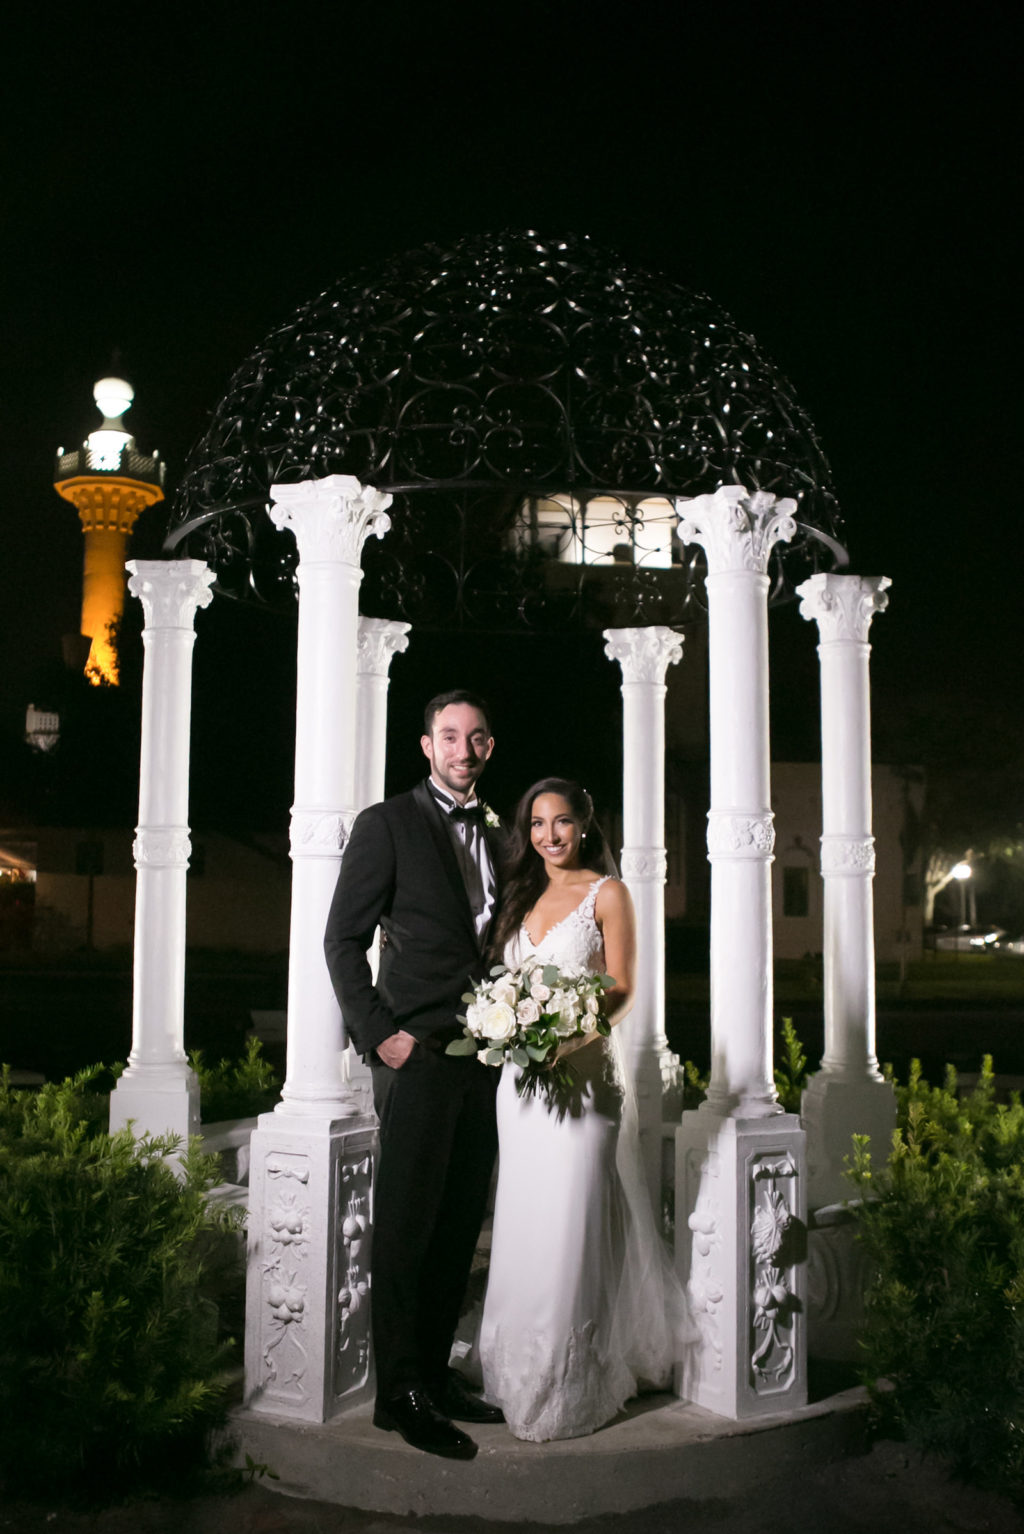 Elegant Bride and Groom Nighttime Photo Under White Pedestals | Tampa Bay Wedding Photographer Carrie Wildes Photography | Wedding Dress Shop Isabel O'Neil Bridal Collection